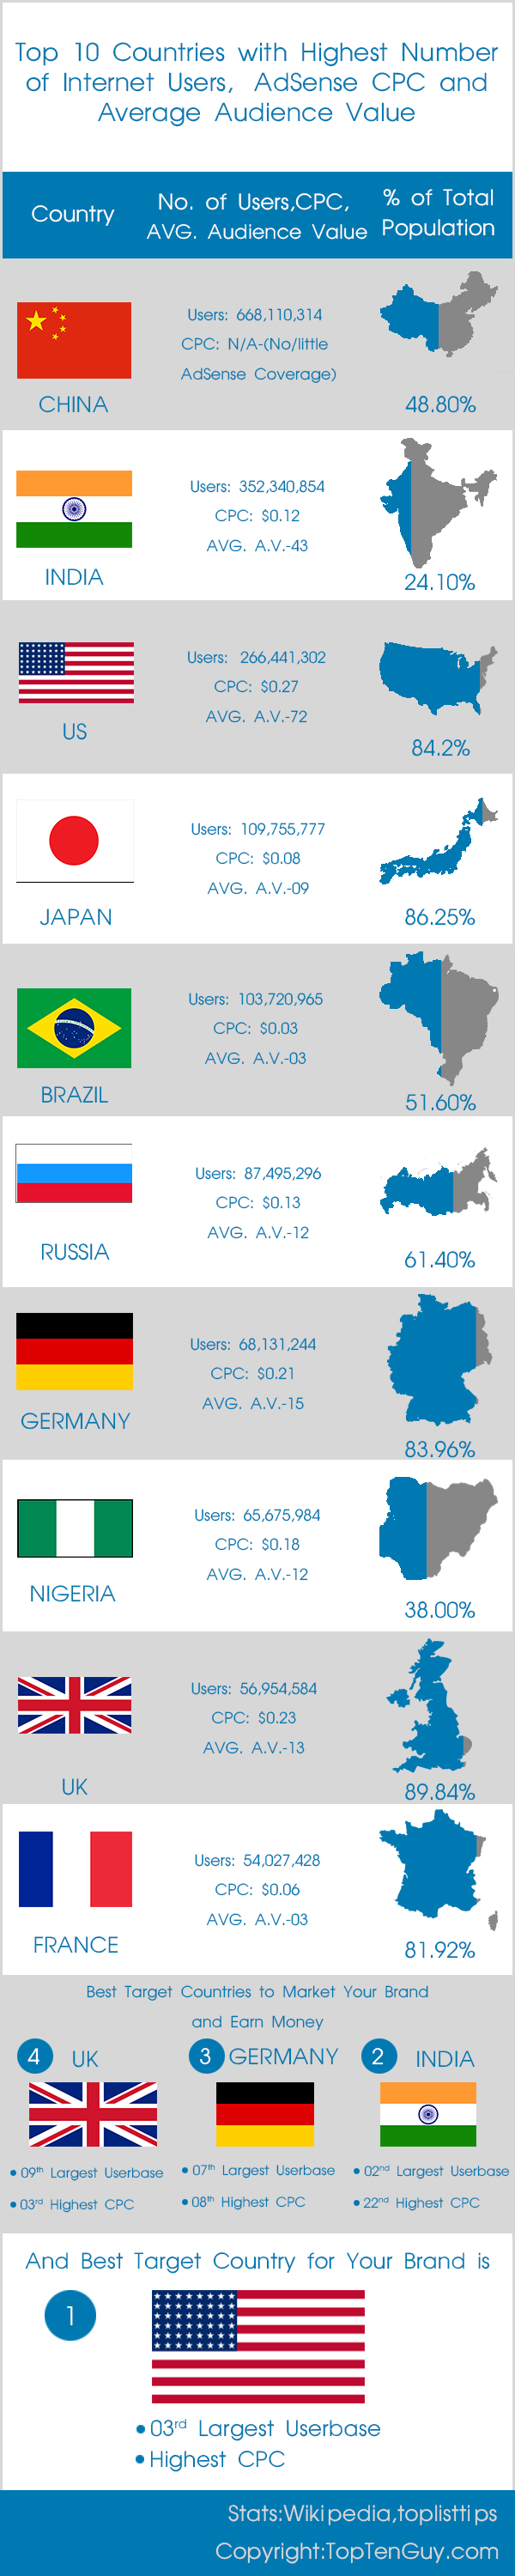 Top 10 Countries with Highest Number of Internet Users, AdSense CPC and Average Audience Value Infographic